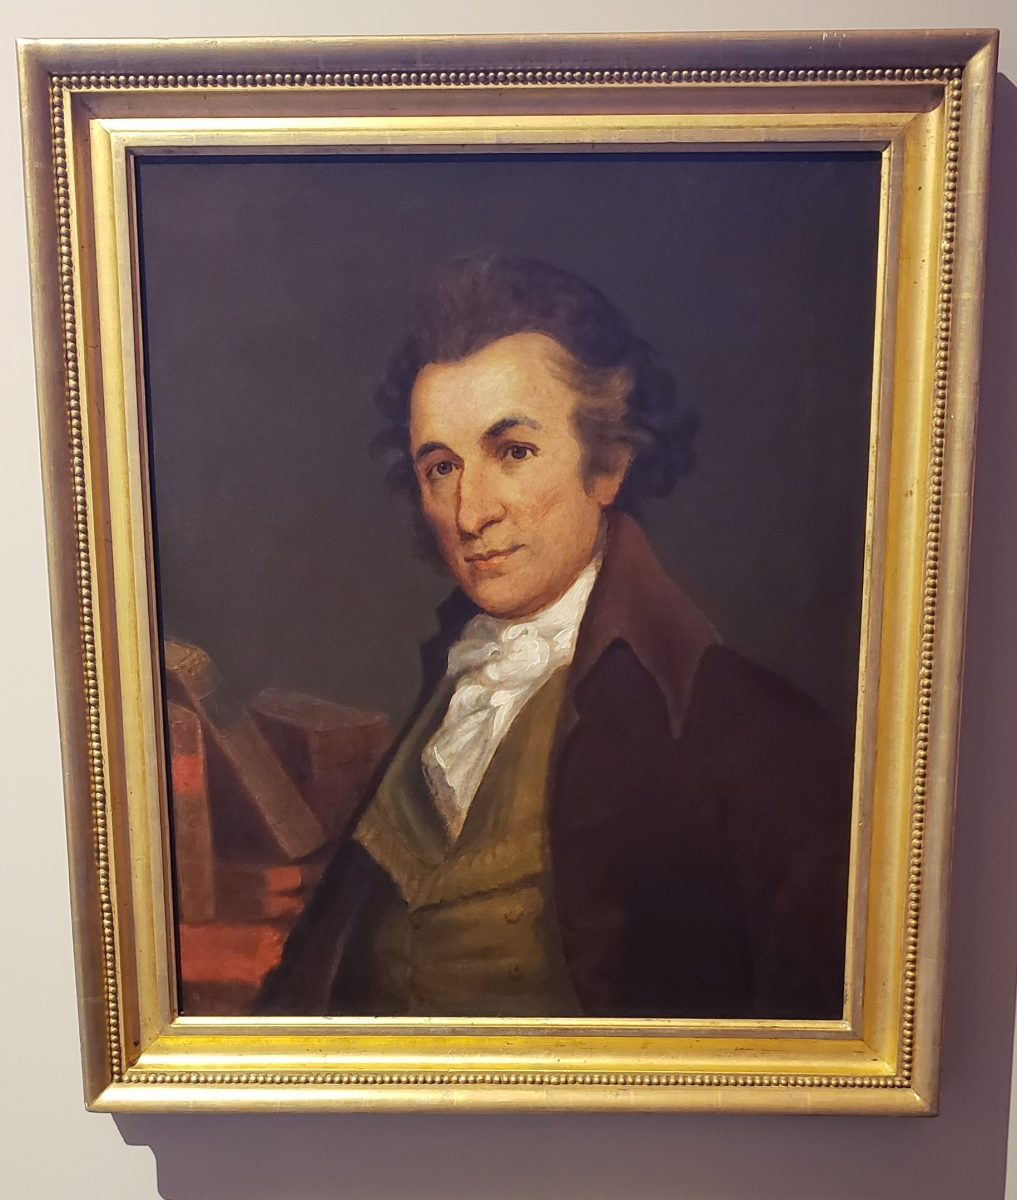 Thomas Paine Portrait located in the Second Bank of the United States Portrait Gallery